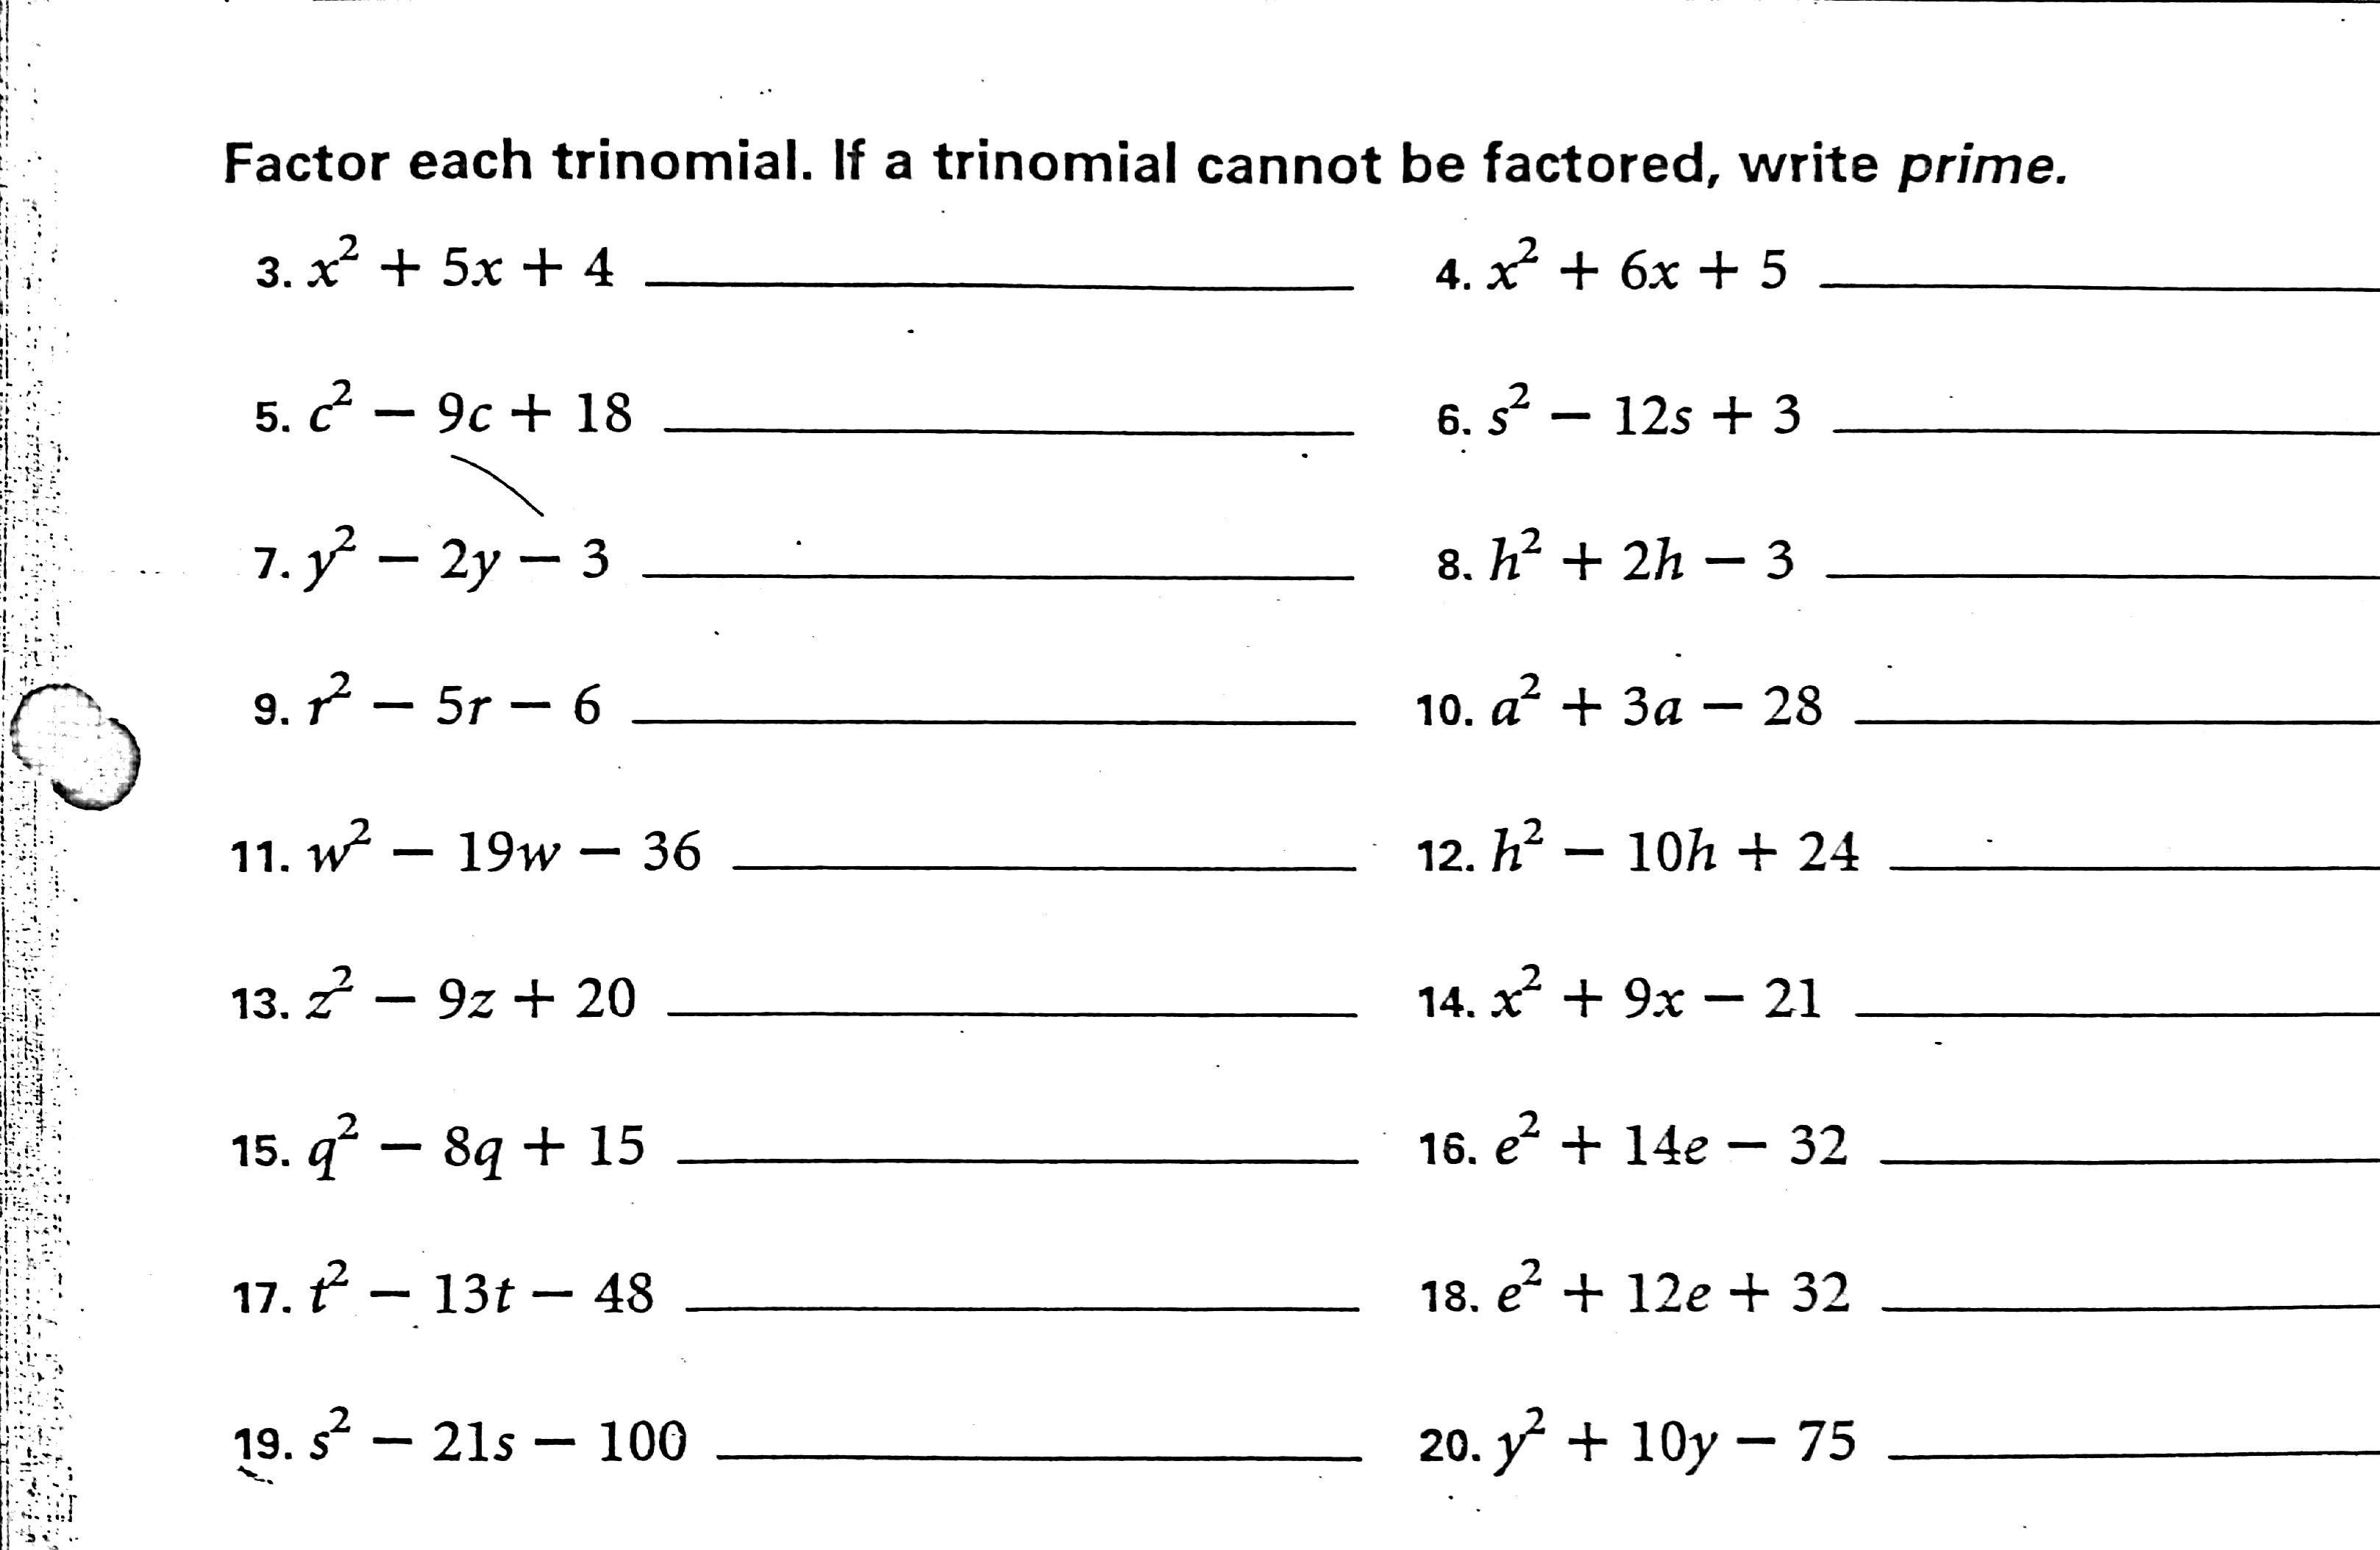 Proatmealus  Surprising Factoring Worksheet  Delwfgcom With Likable Factoring Polynomials Practice Worksheet With Answers Coterraneo With Enchanting Manuscript Handwriting Practice Worksheets Also Feelings Faces Worksheet In Addition Free Two Digit Multiplication Worksheets And Houghton Mifflin Math Grade  Worksheets As Well As Multiplication Array Worksheets Rd Grade Additionally Printable Division Worksheets For Th Grade From Delwfgcom With Proatmealus  Likable Factoring Worksheet  Delwfgcom With Enchanting Factoring Polynomials Practice Worksheet With Answers Coterraneo And Surprising Manuscript Handwriting Practice Worksheets Also Feelings Faces Worksheet In Addition Free Two Digit Multiplication Worksheets From Delwfgcom